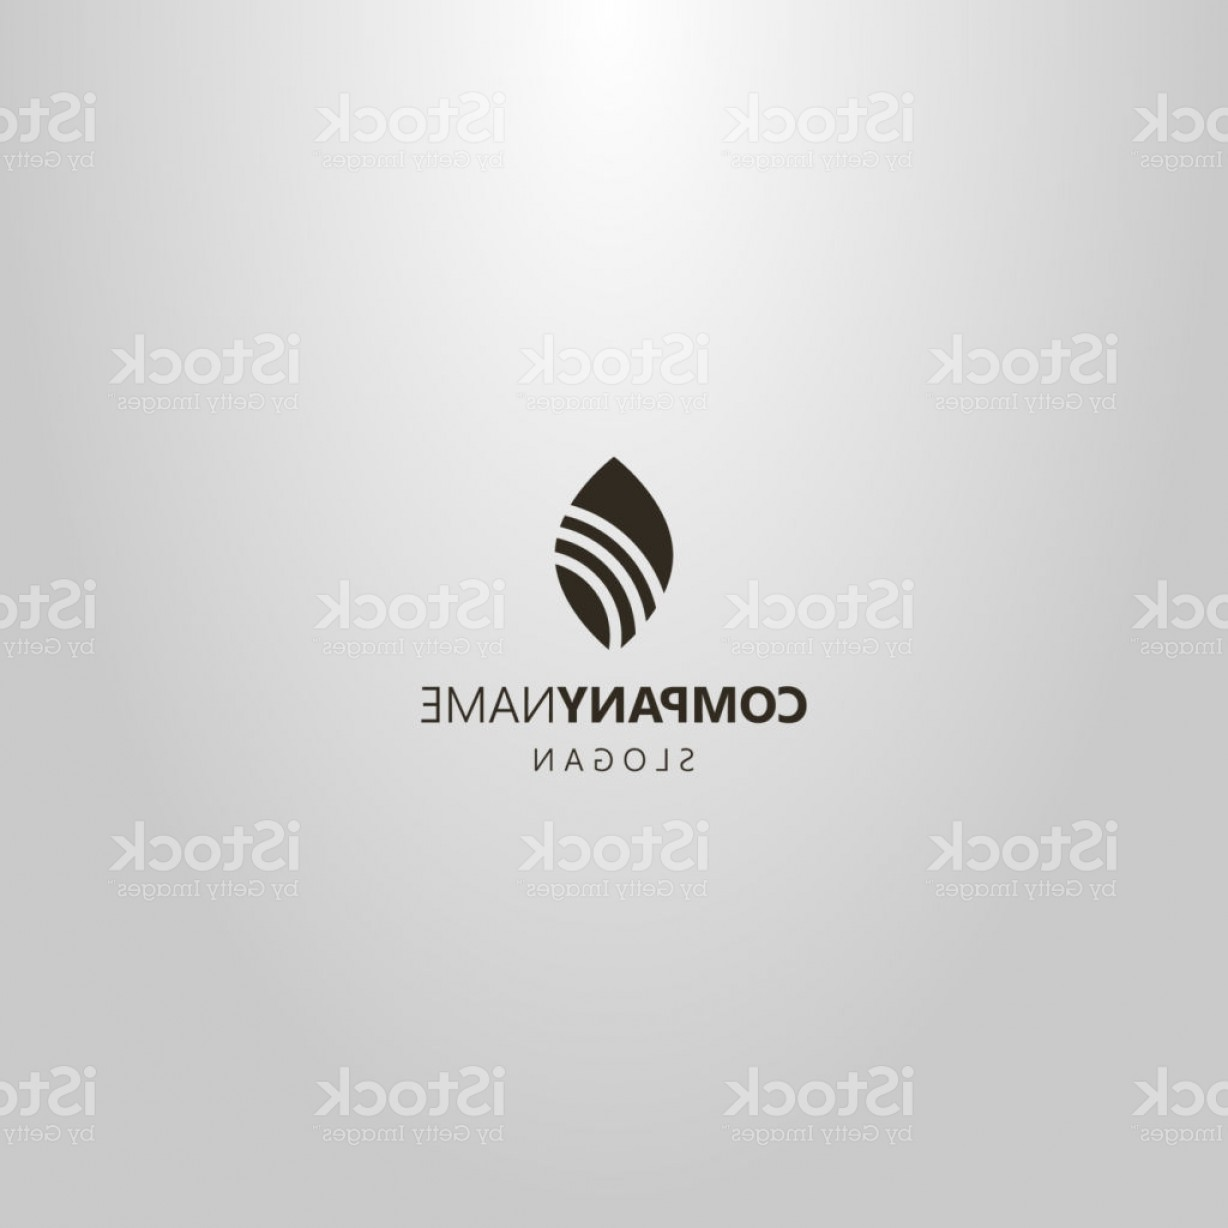 Art Space Logo Vector: Simple Vector Flat Art Negative Space Logo Of A Leaf With Three Rounded Stripes Gm